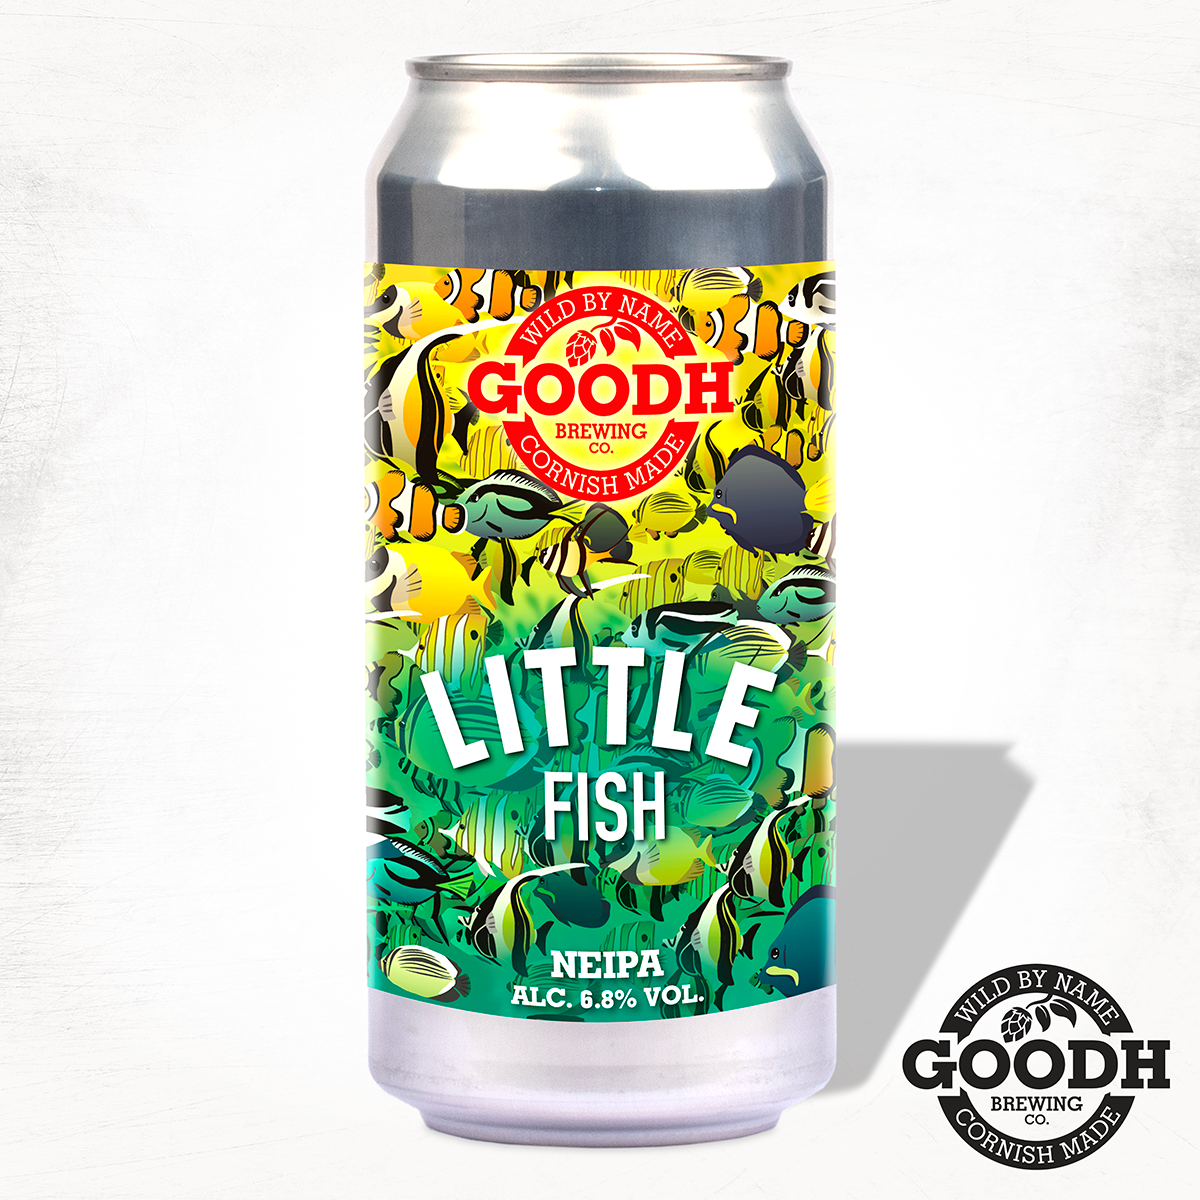 Goodh Brewing - Little Fish - NEIPA - 440ml Can